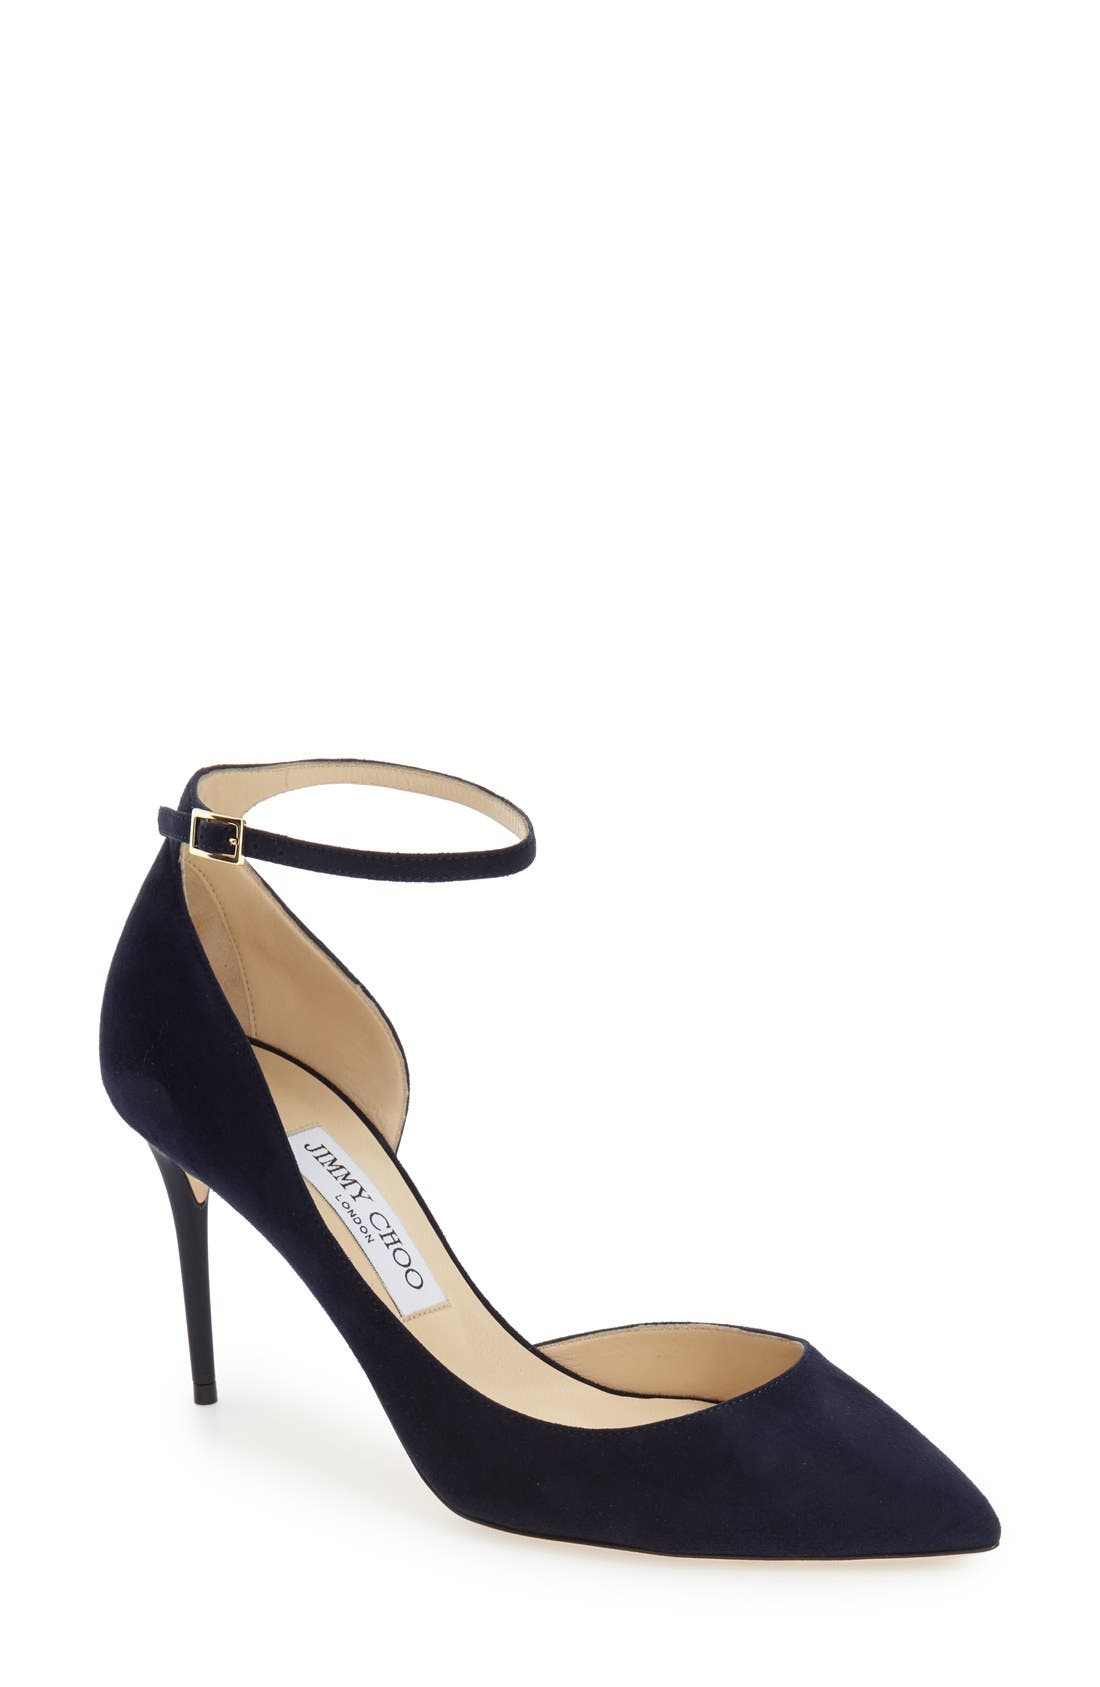 JIMMY CHOO, 'Lucy' Half d'Orsay Pointy Toe Pump, Main thumbnail 1, color, 410